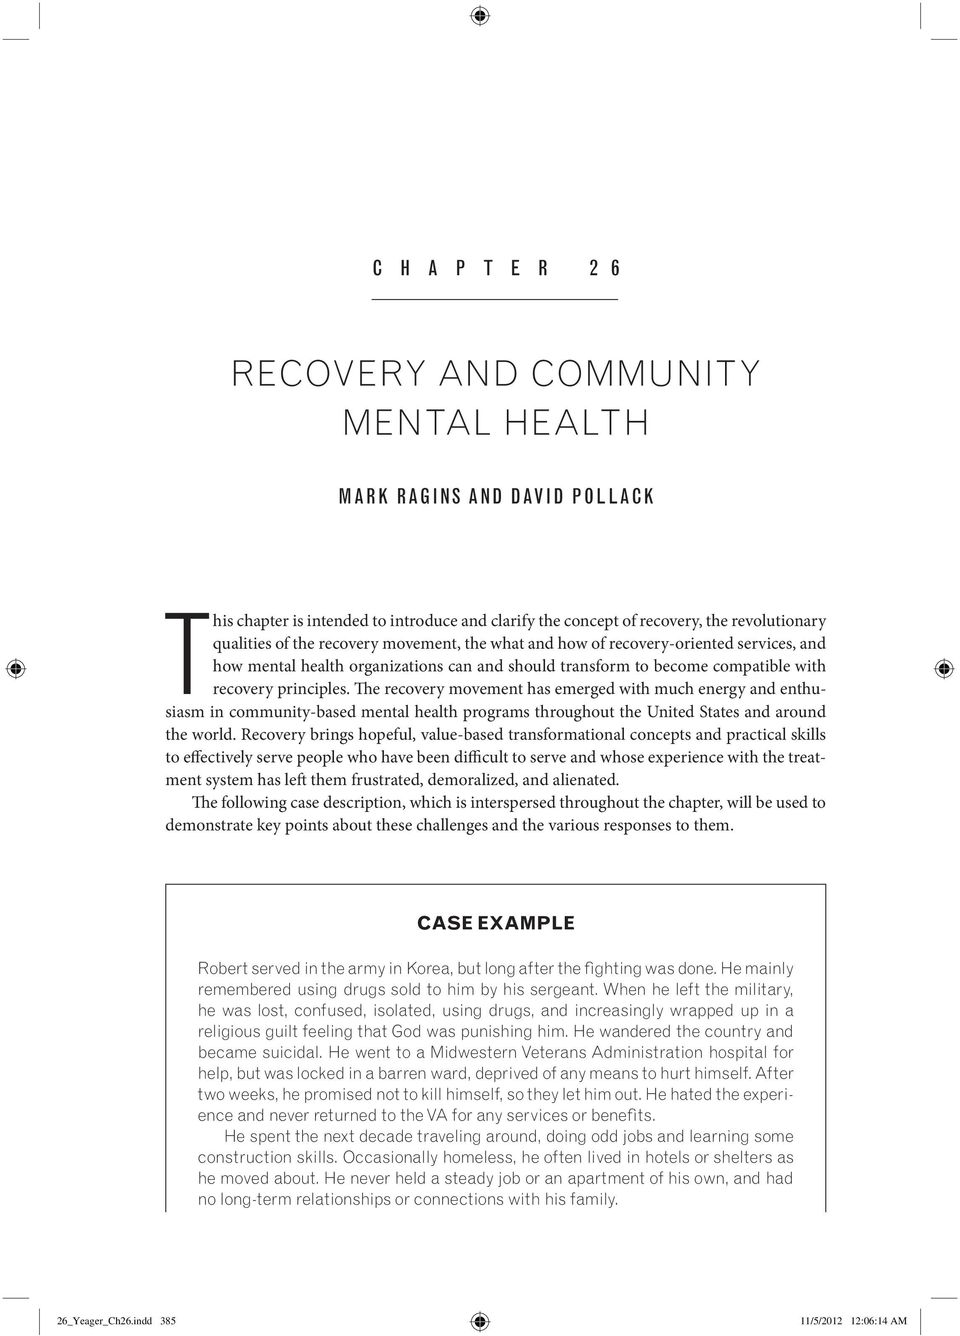 The recovery movement has emerged with much energy and enthusiasm in community-based mental health programs throughout the United States and around the world.